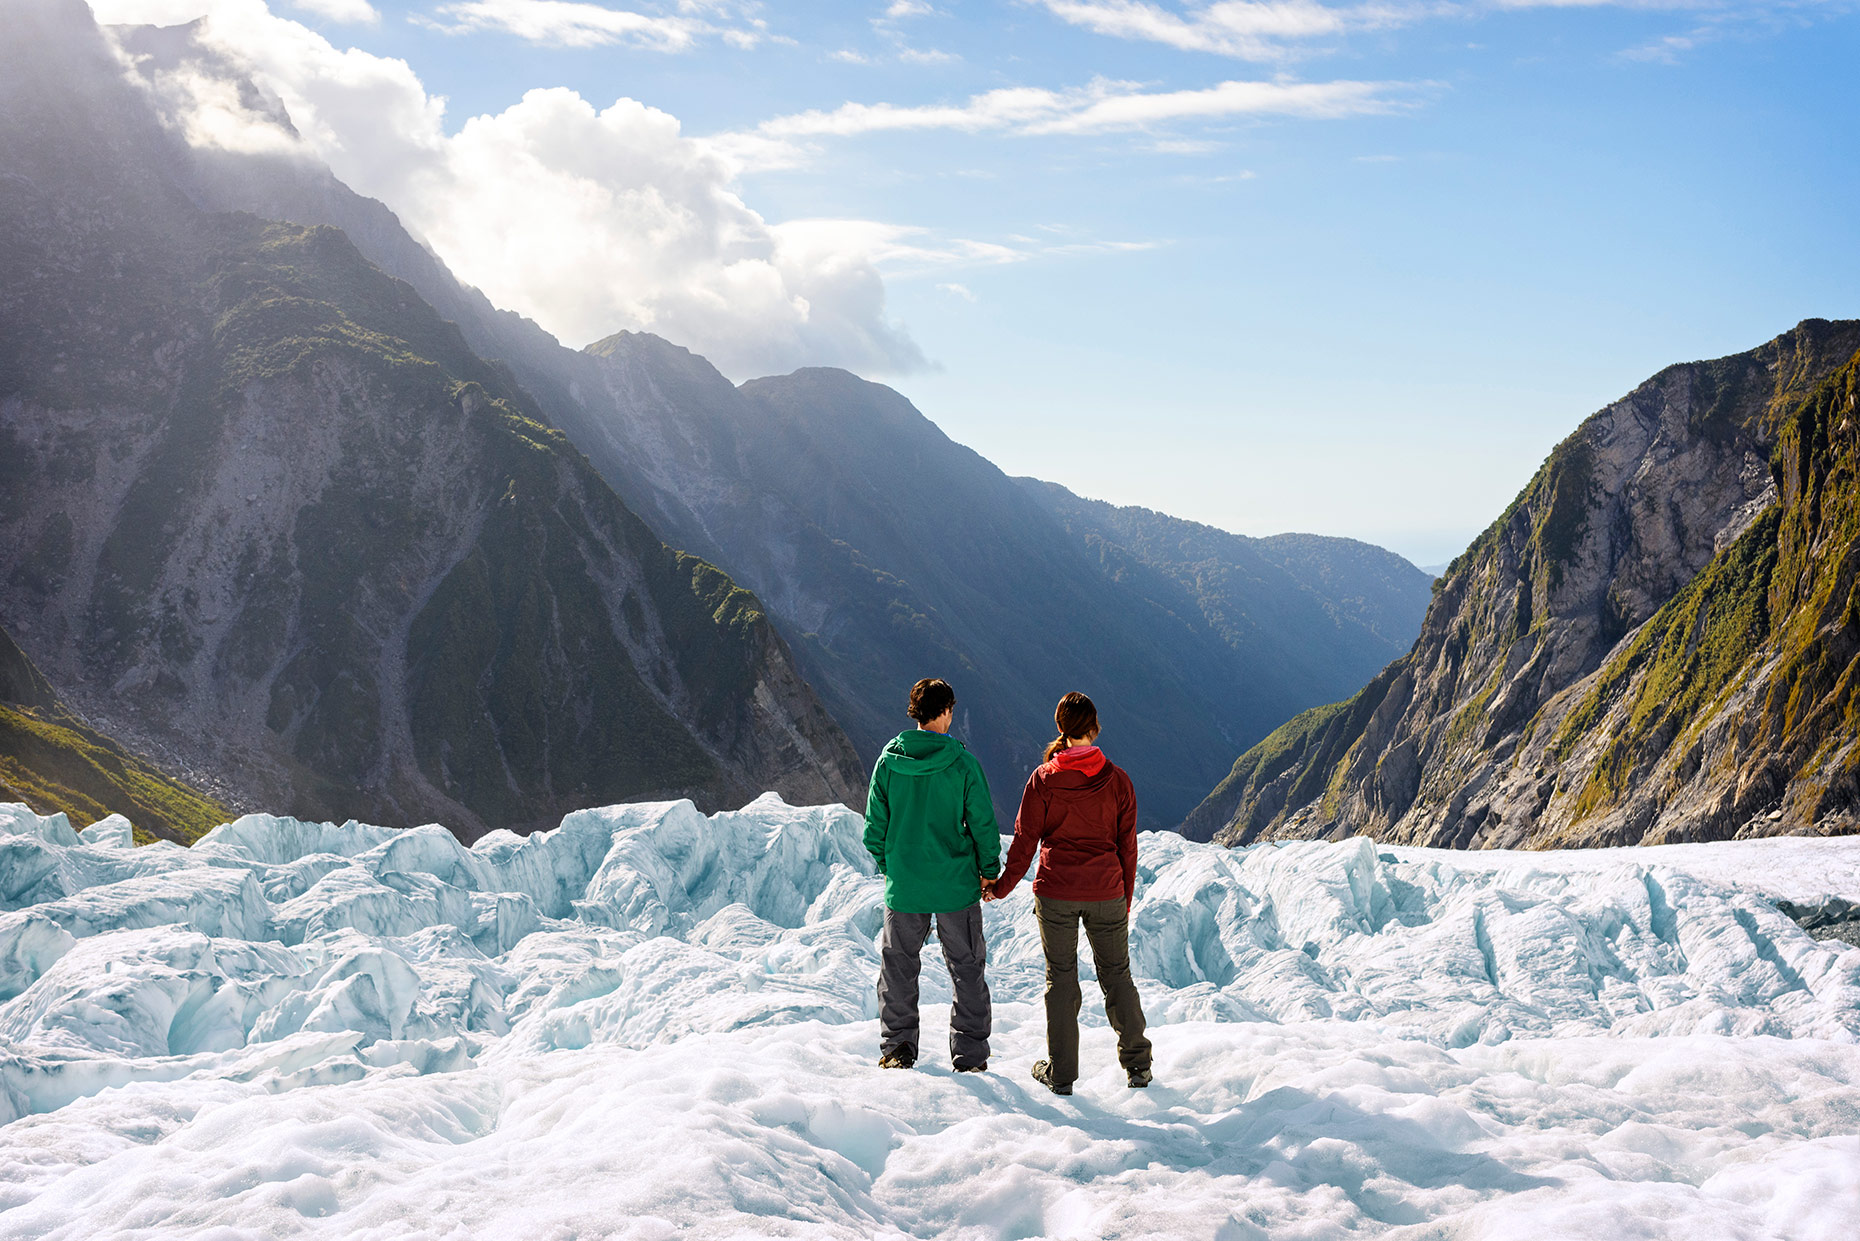 Fox Glacier New Zealand Photography for New Zealand Tourism. Fraser Clements Photographer Lifestyle image